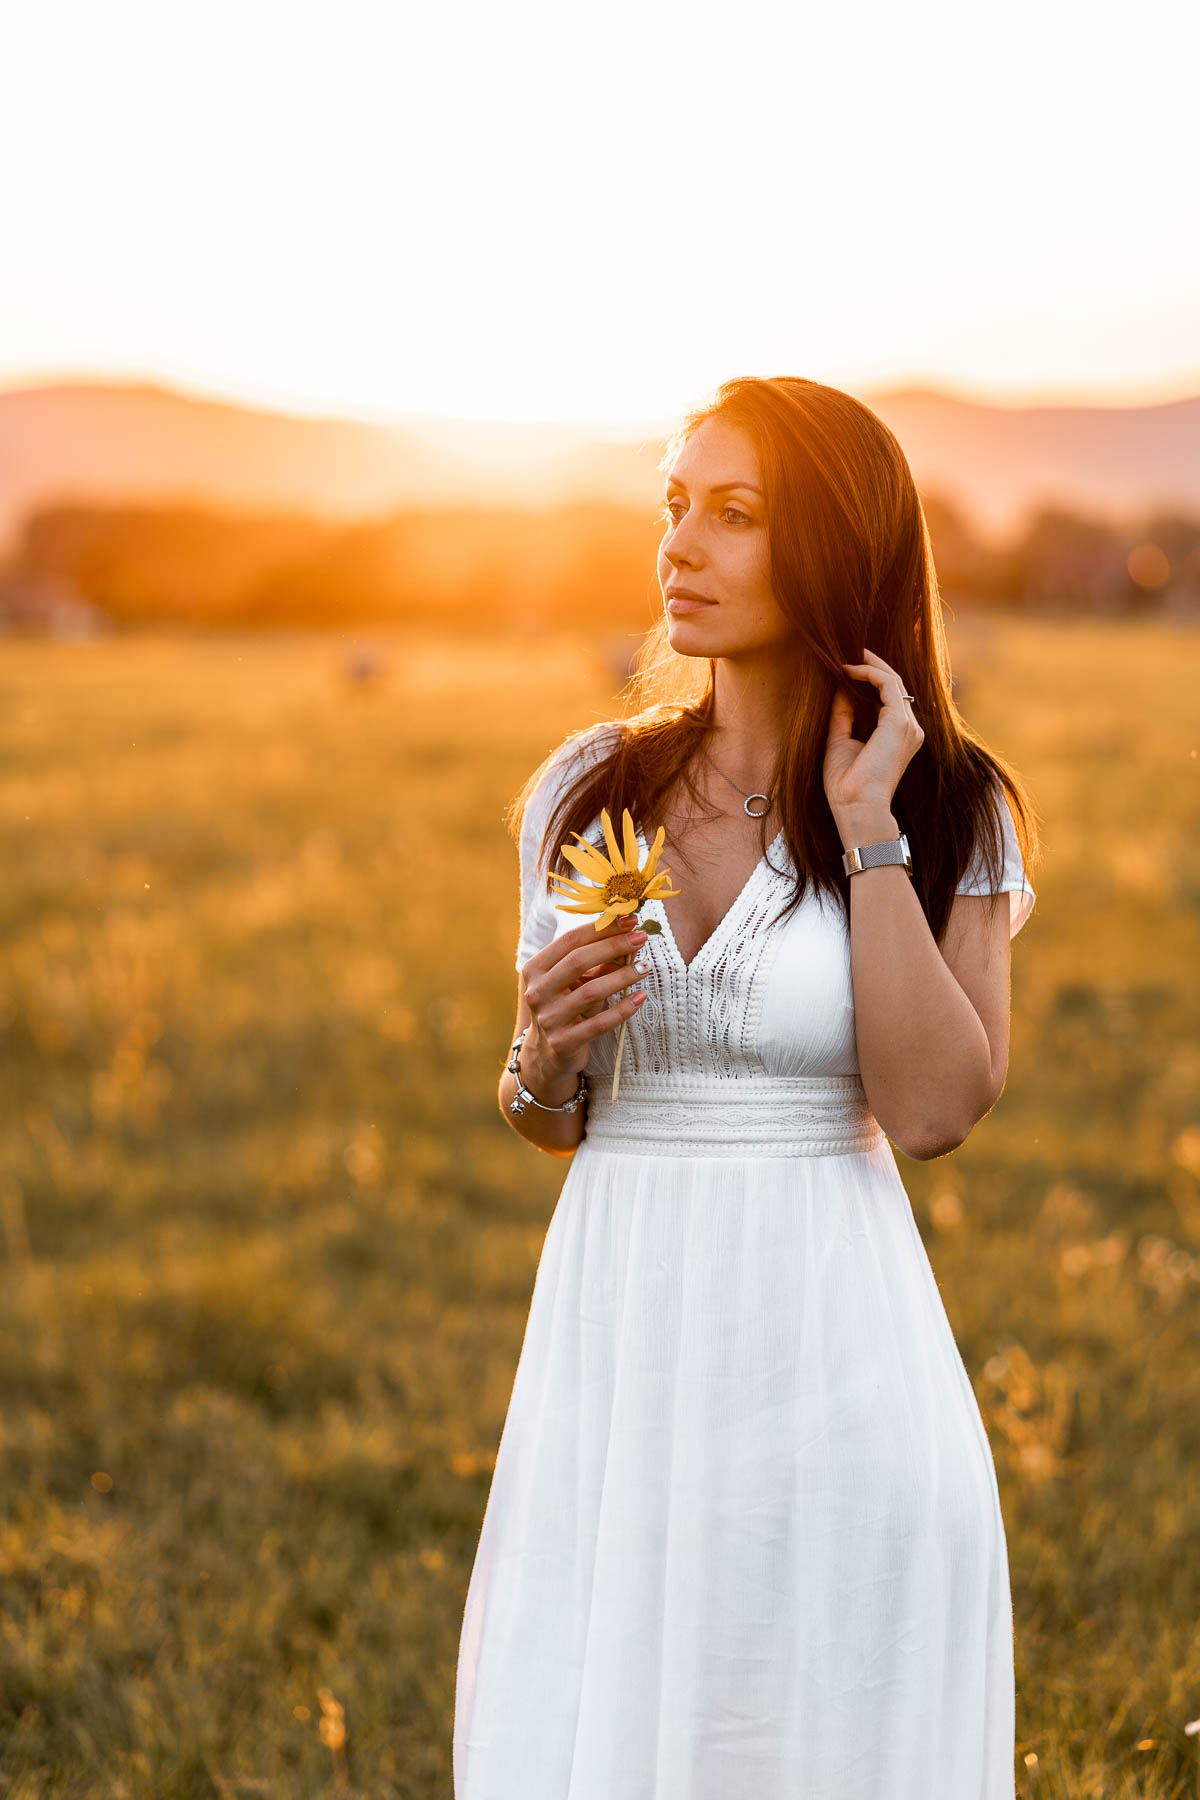 Girl in a white dress standing on a field at sunset